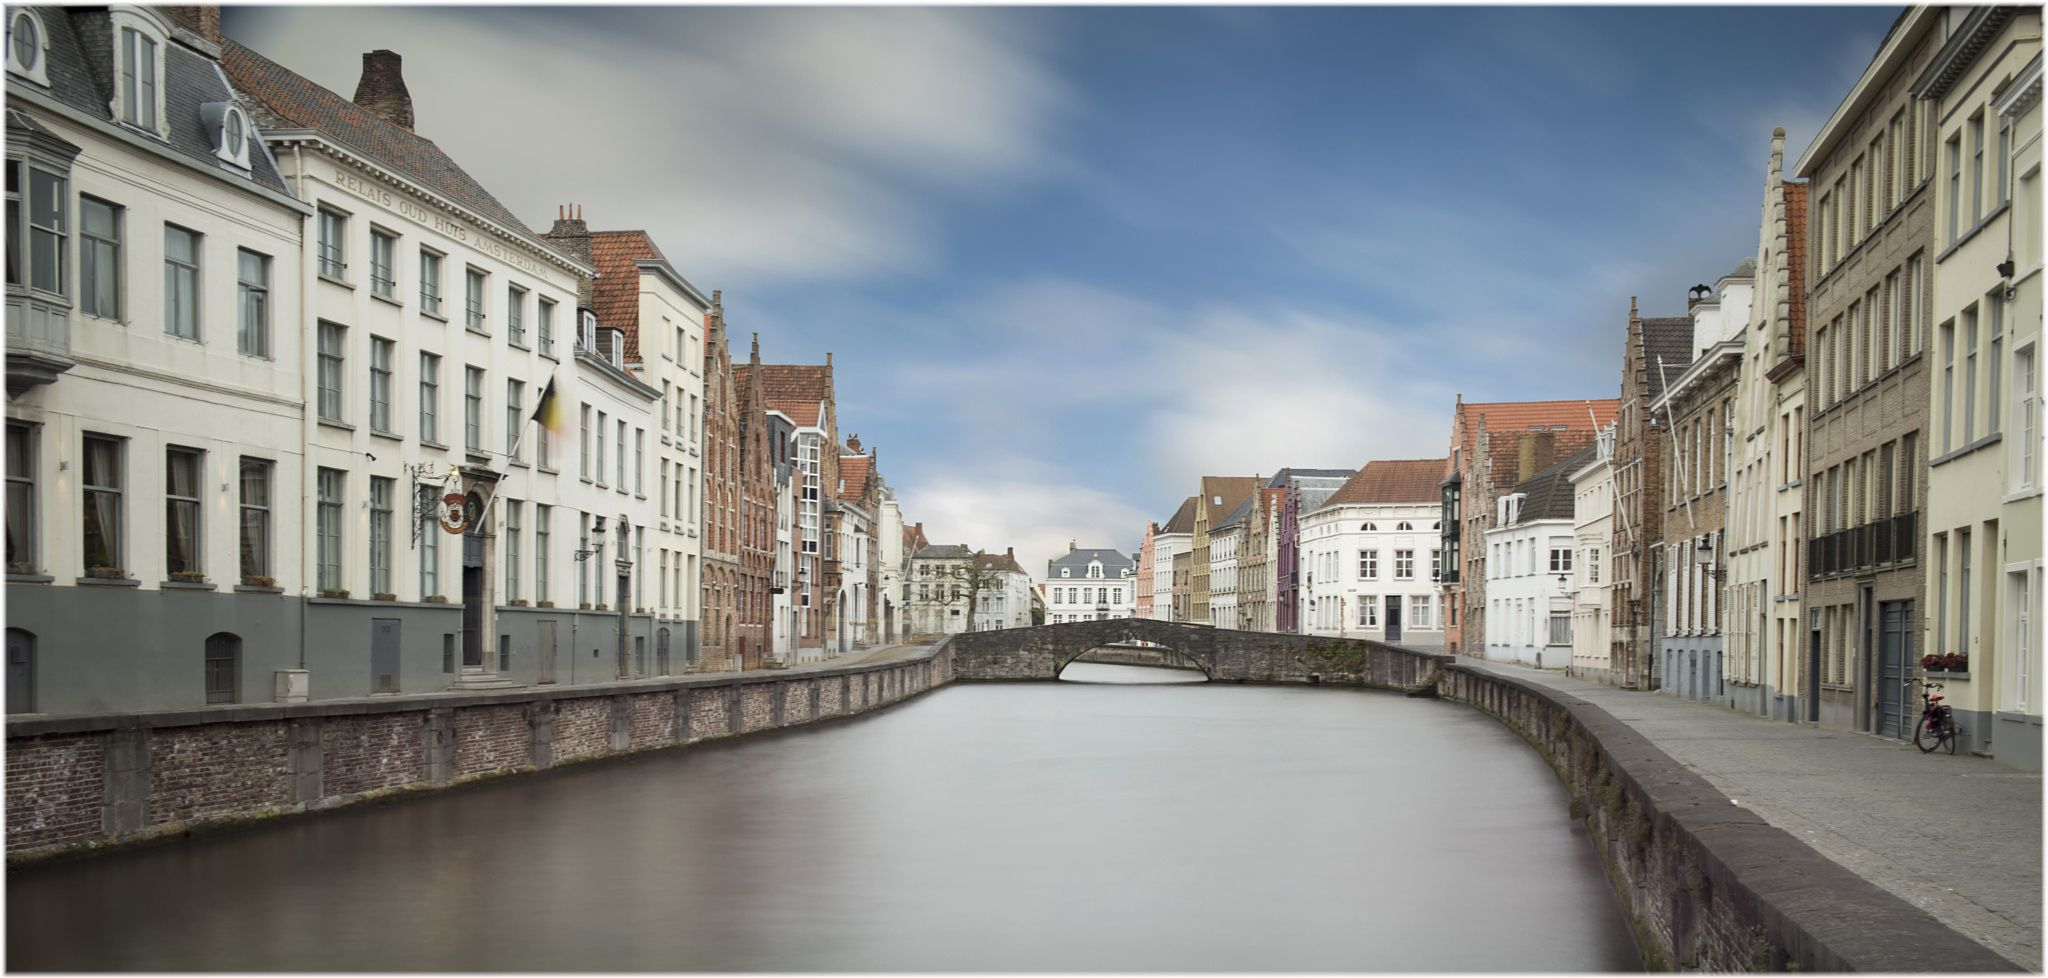 Photograph Brugge by Patrick Desmet on 500px